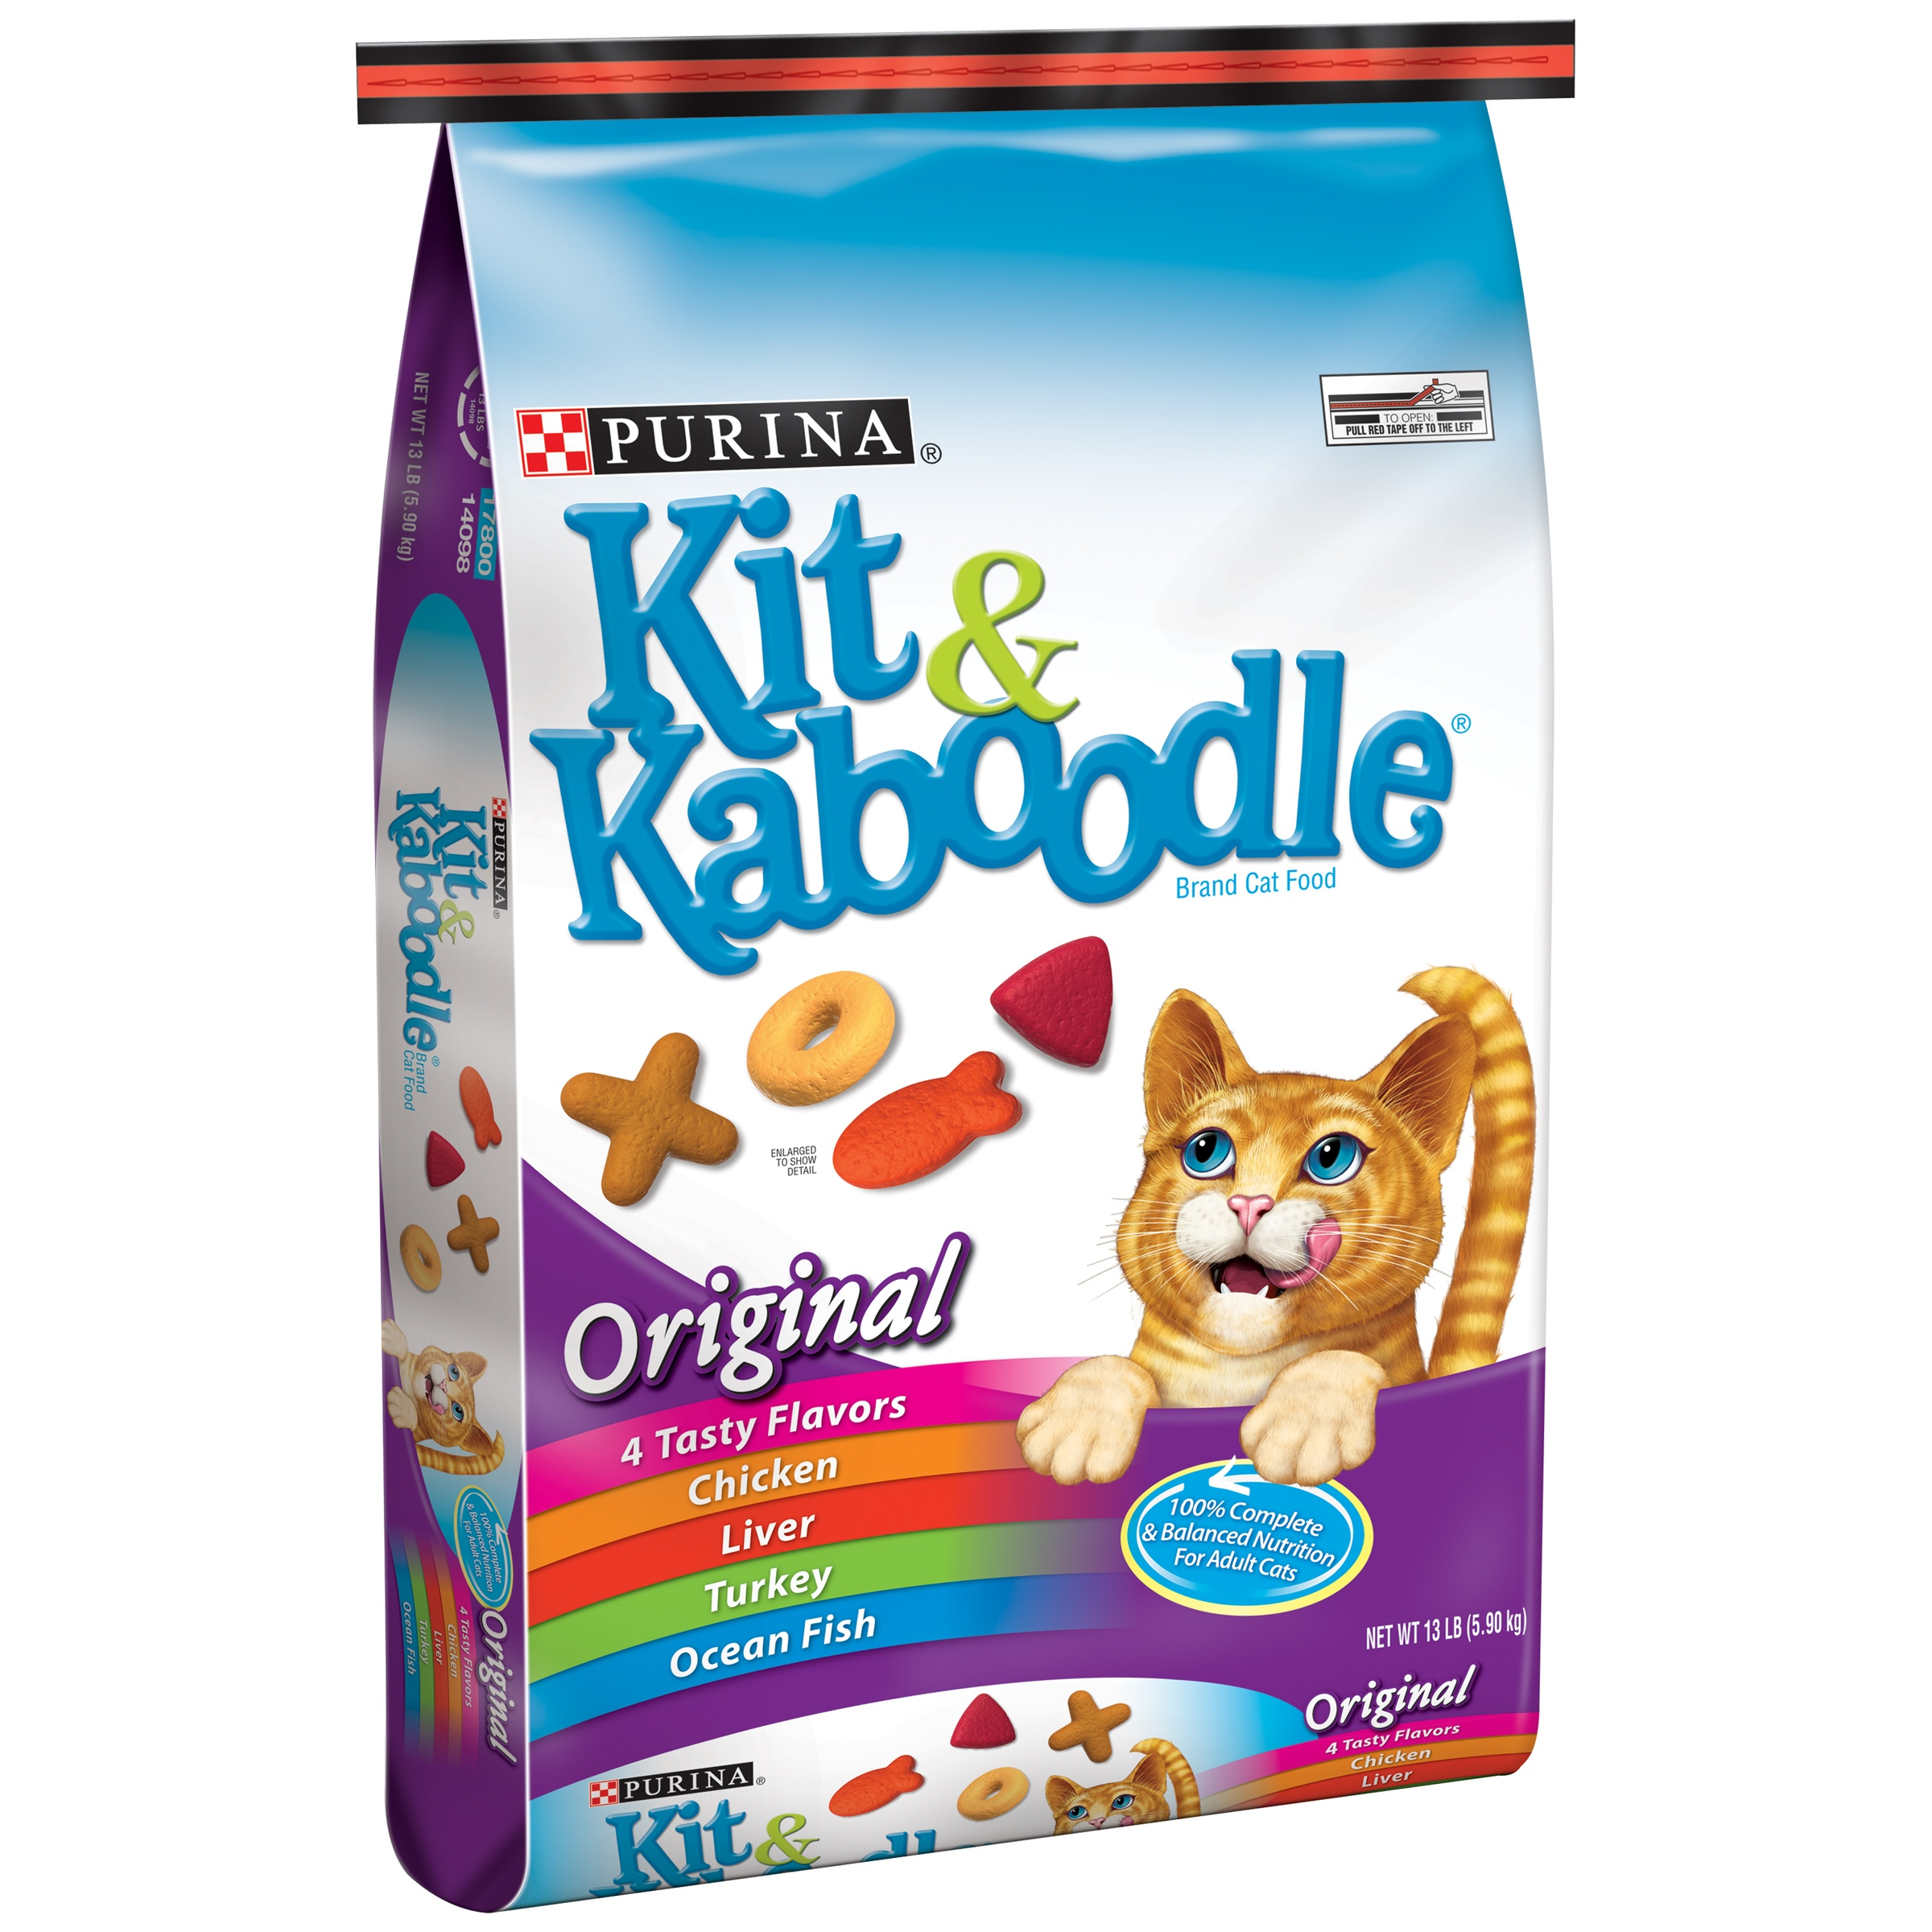 Purina Kit & Kaboodle Original Dry Cat Food, 13 Lb